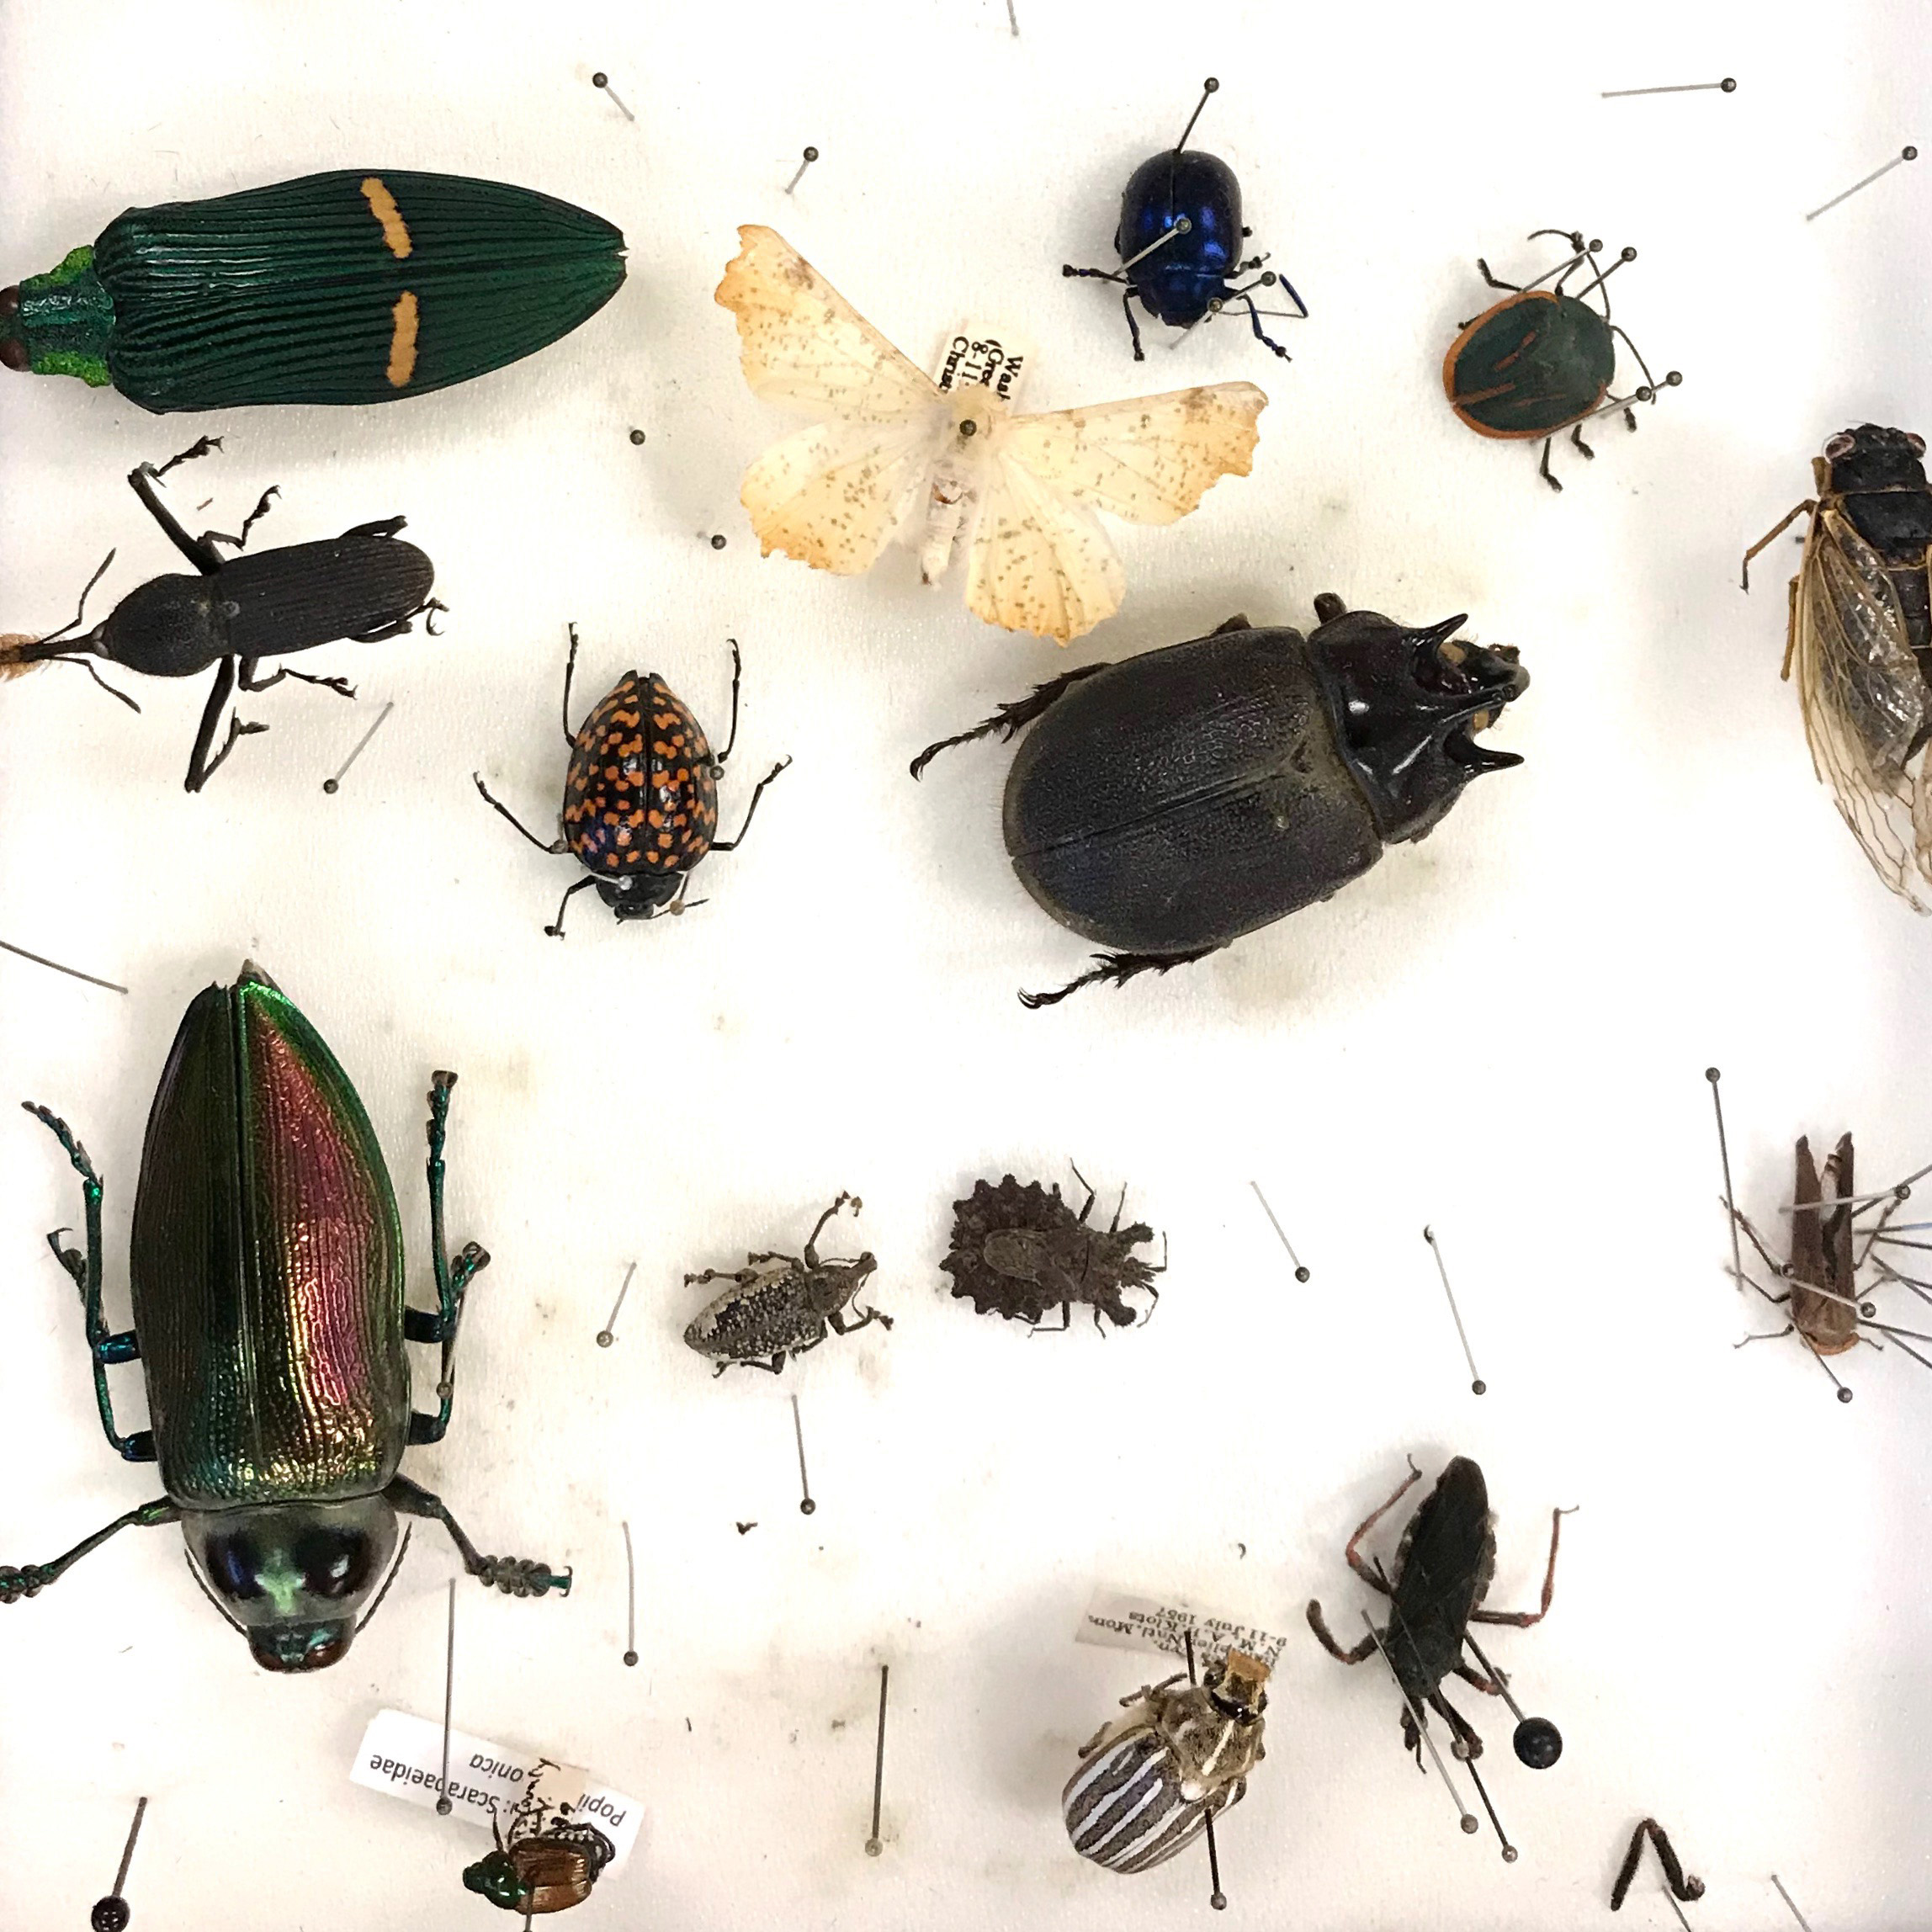 Insect specimens from my entomology class at the NYBG.